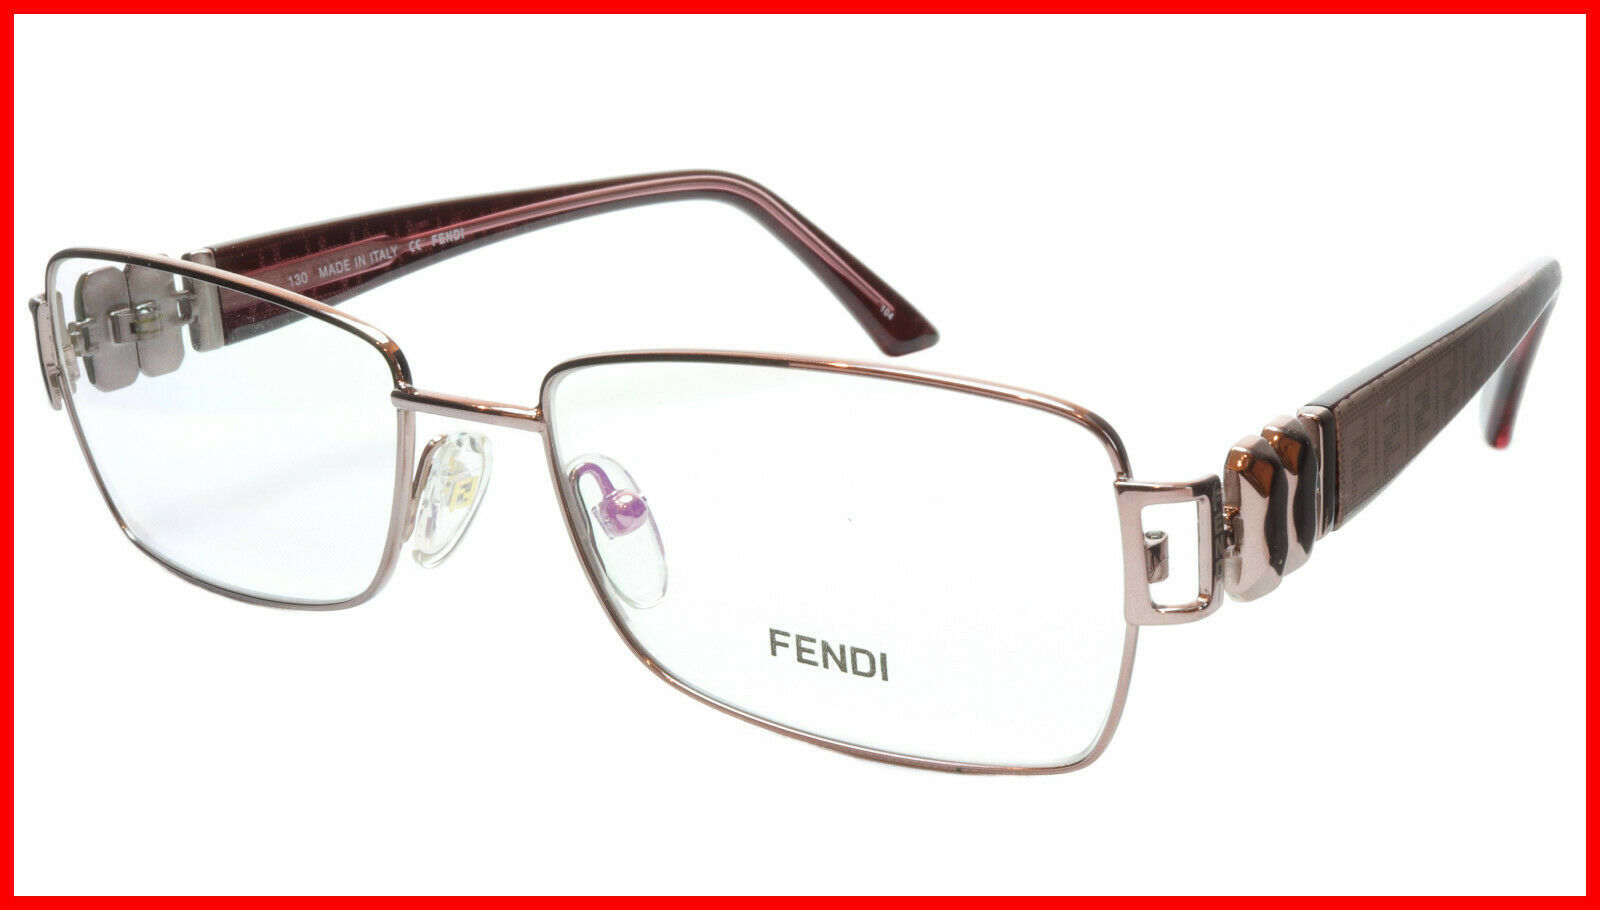 Primary image for FENDI Eyeglasses Frame F883 (663) Metal Light Violet Italy Made 53-16-130, 33